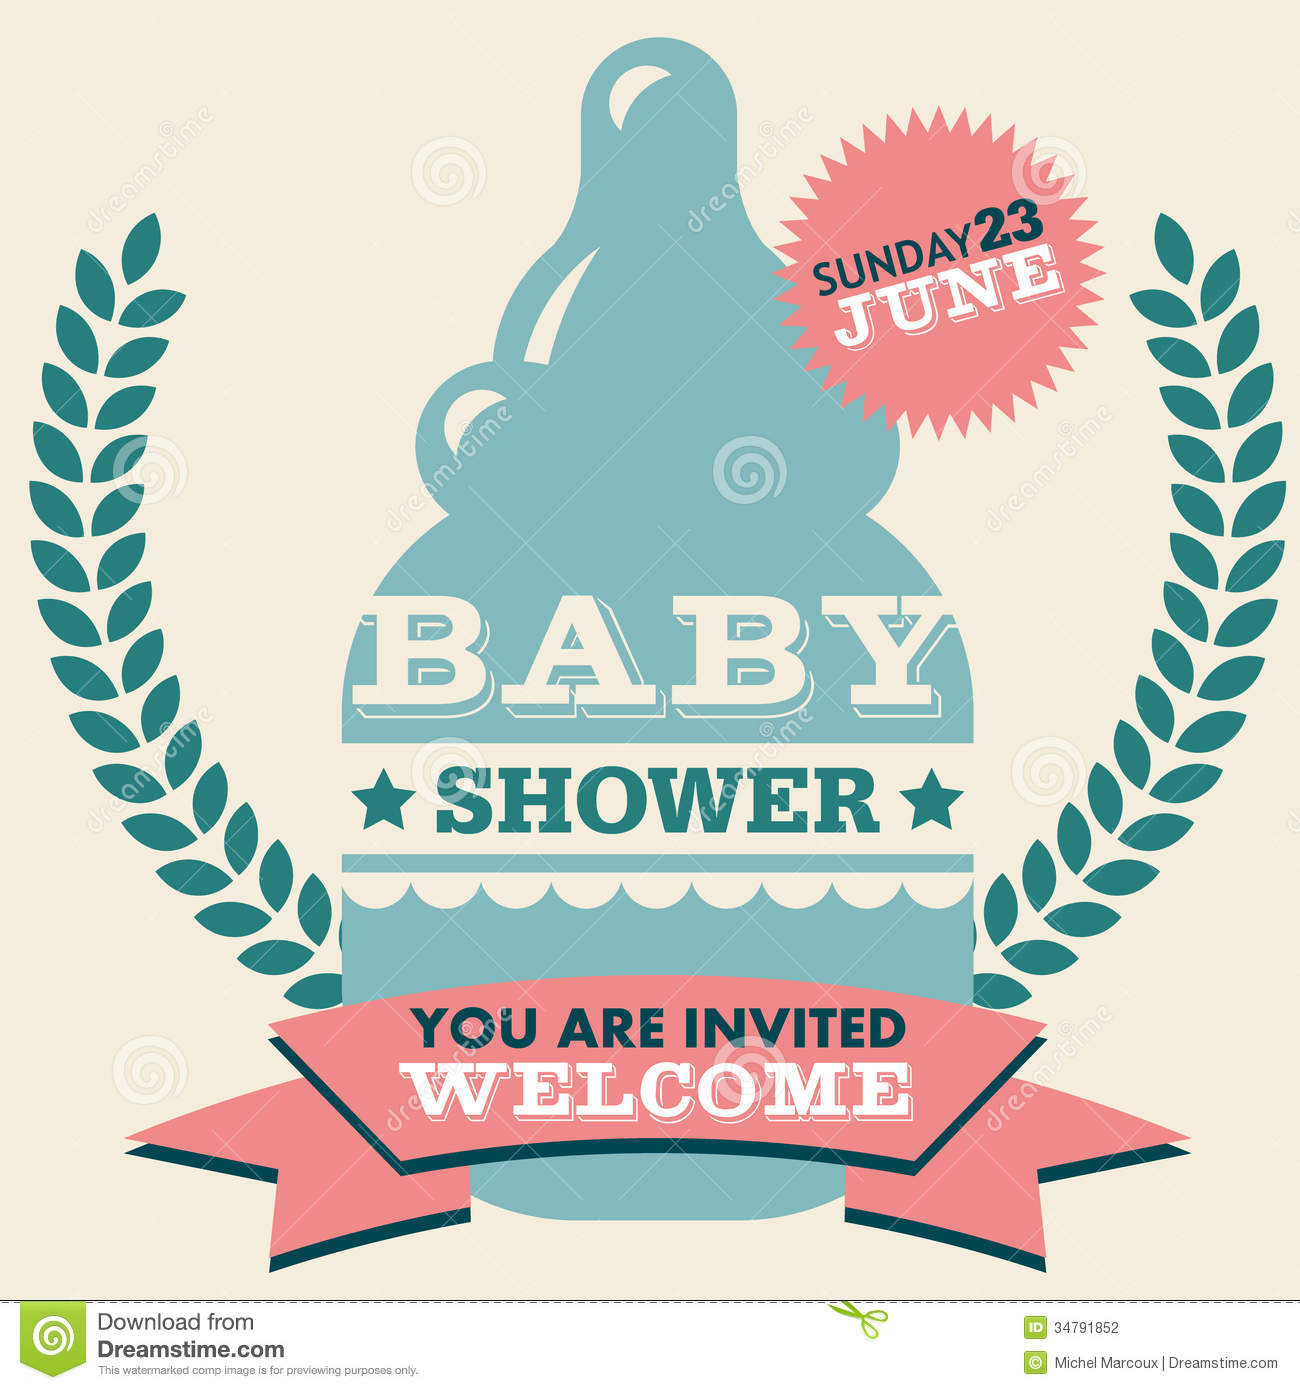 Make Baby Shower Invitations Free